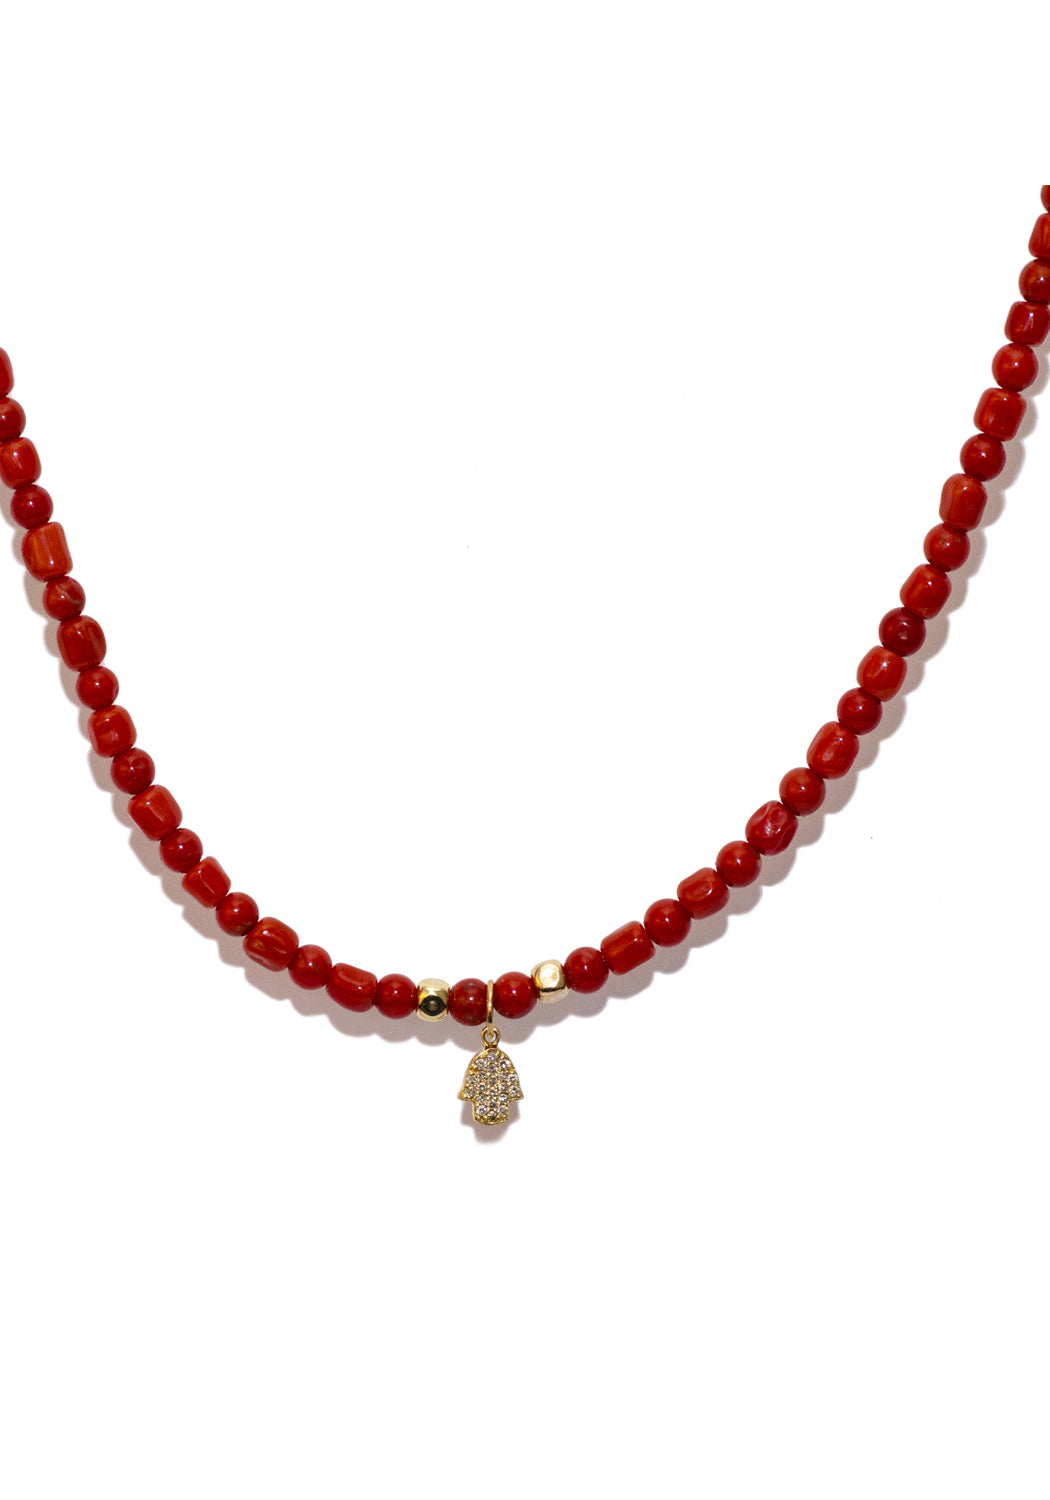 Catherine Michiels Diamond Hamsa Hand & Italian Coral Bead Necklace